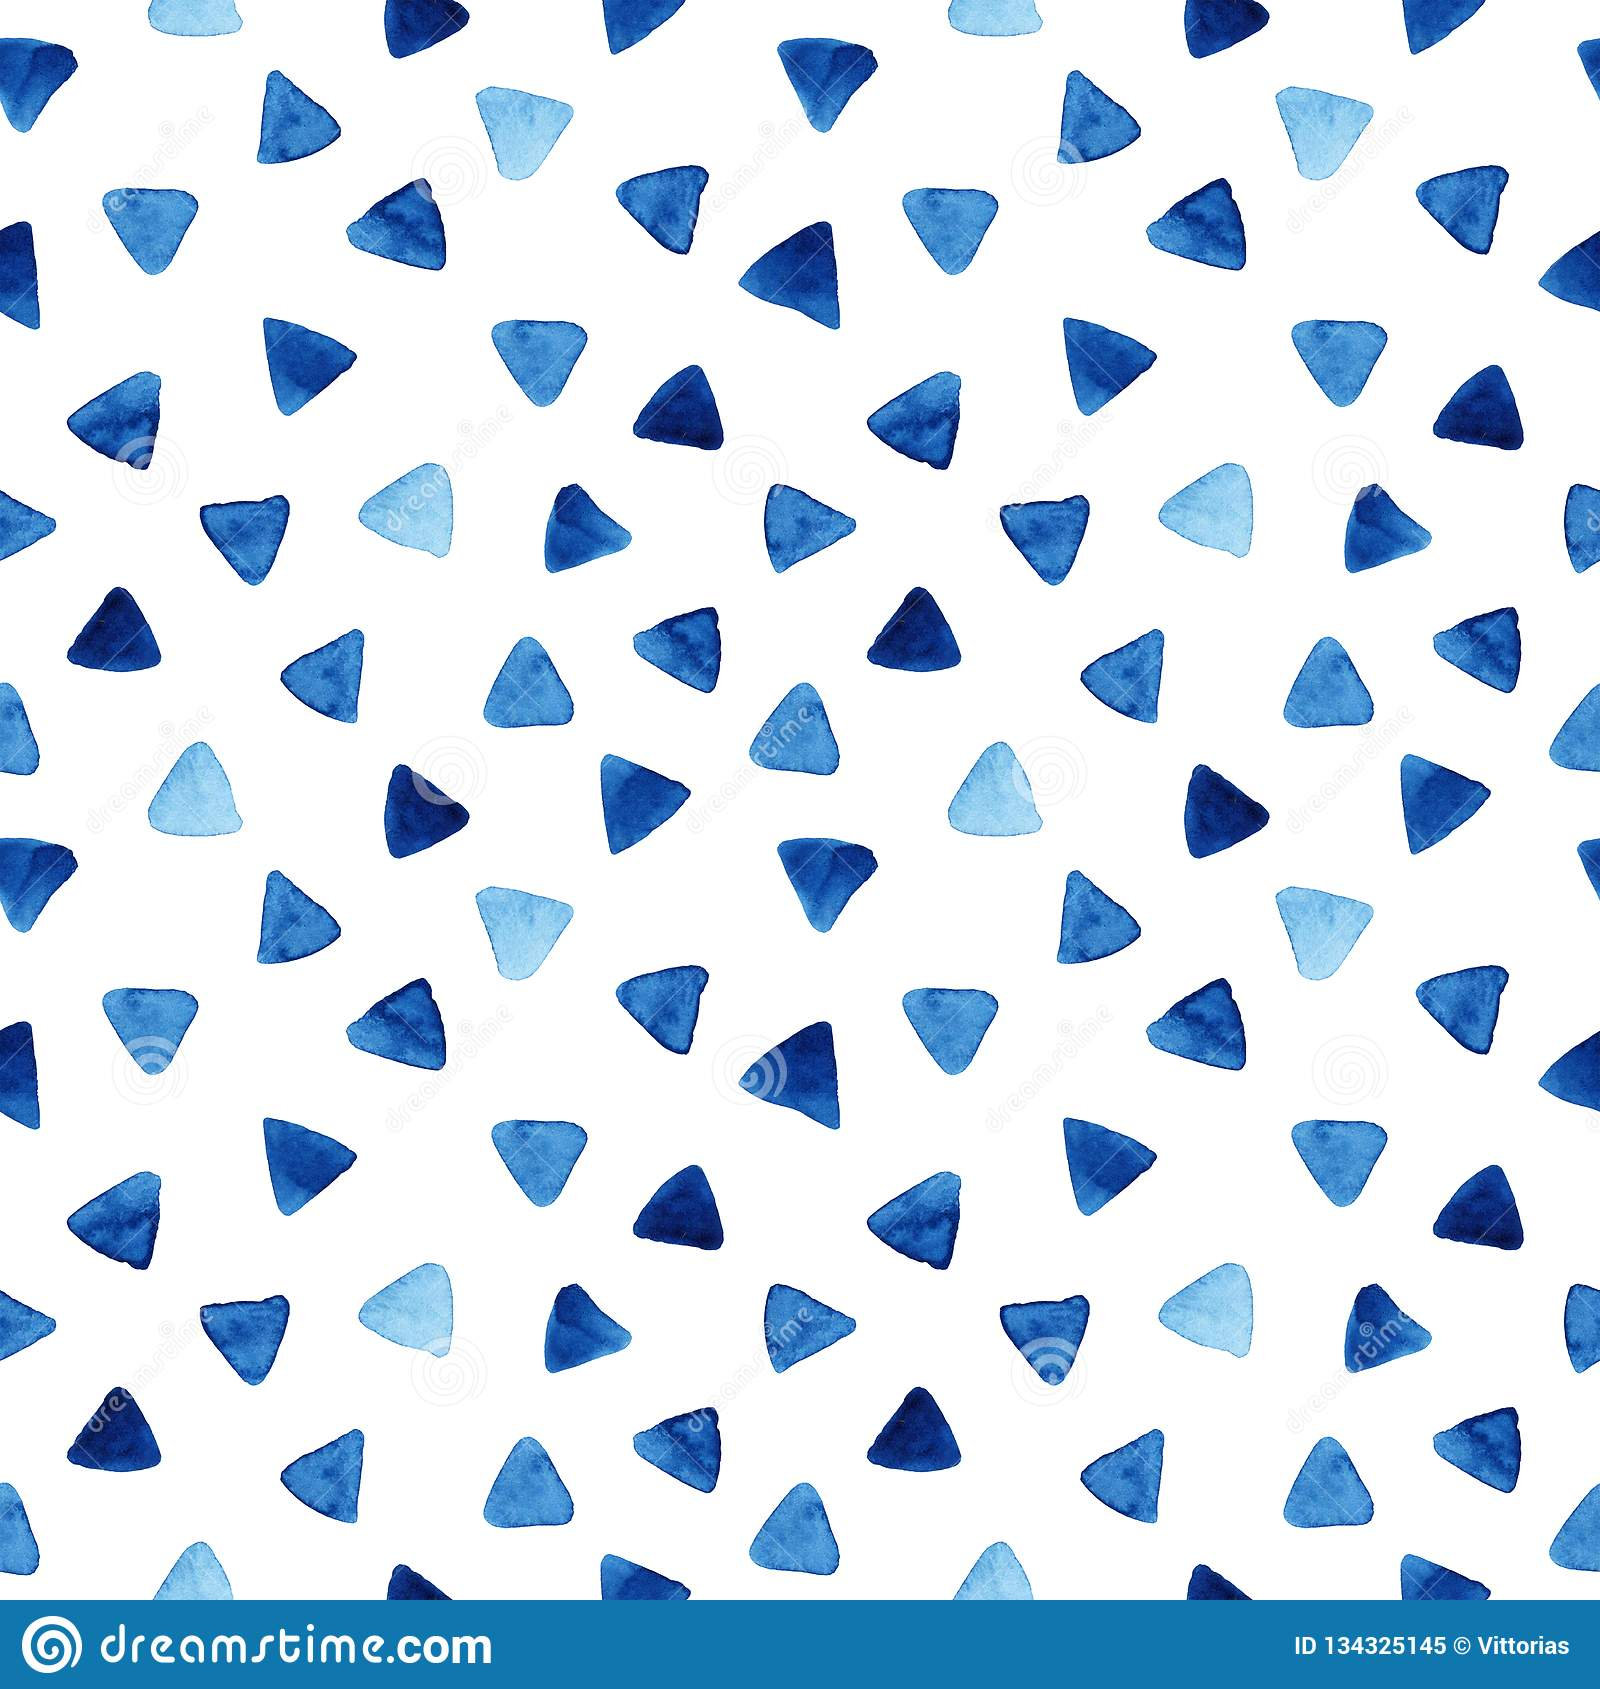 Watercolor seamless pattern with triangles